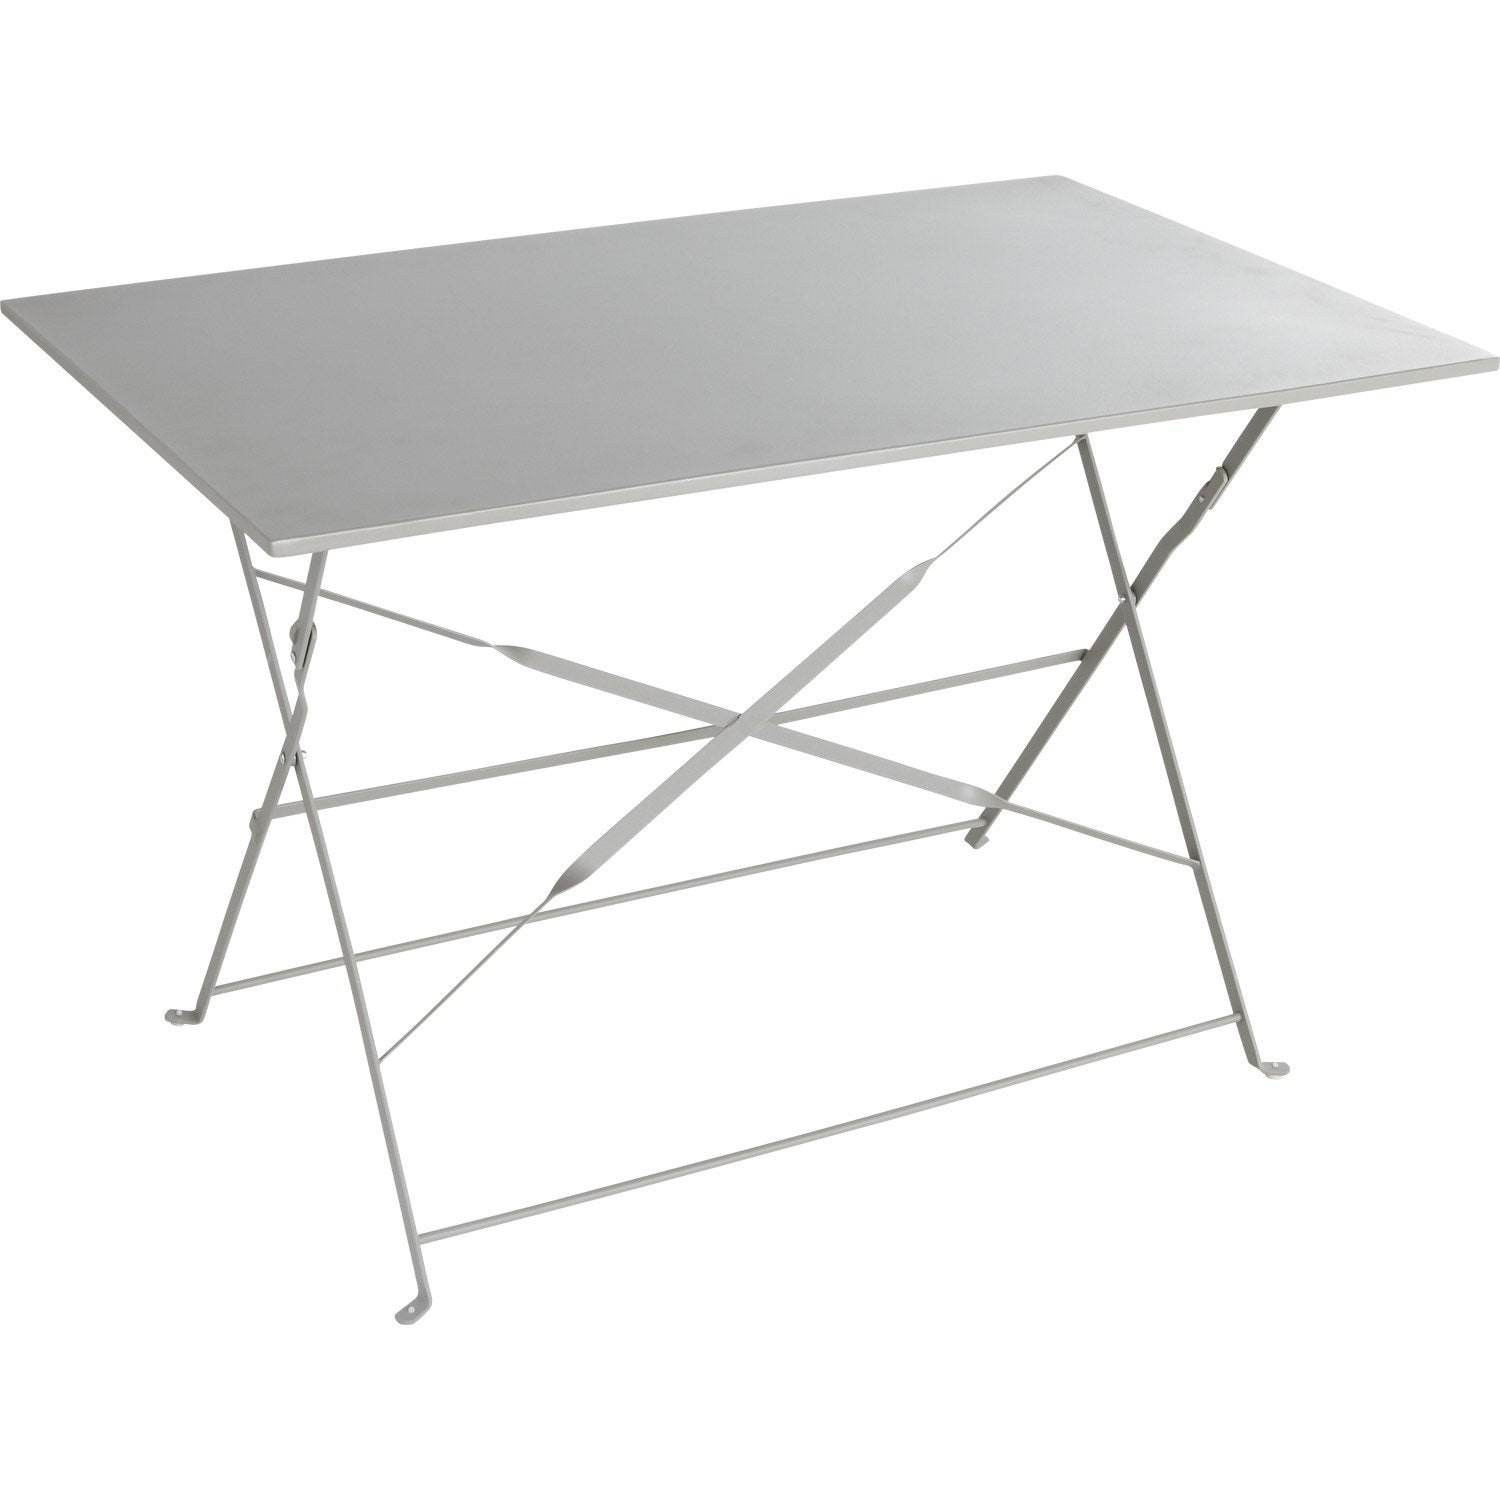 Table de jardin naterial flore rectangulaire gris 4 personnes leroy merlin - Leroy merlin table jardin ...